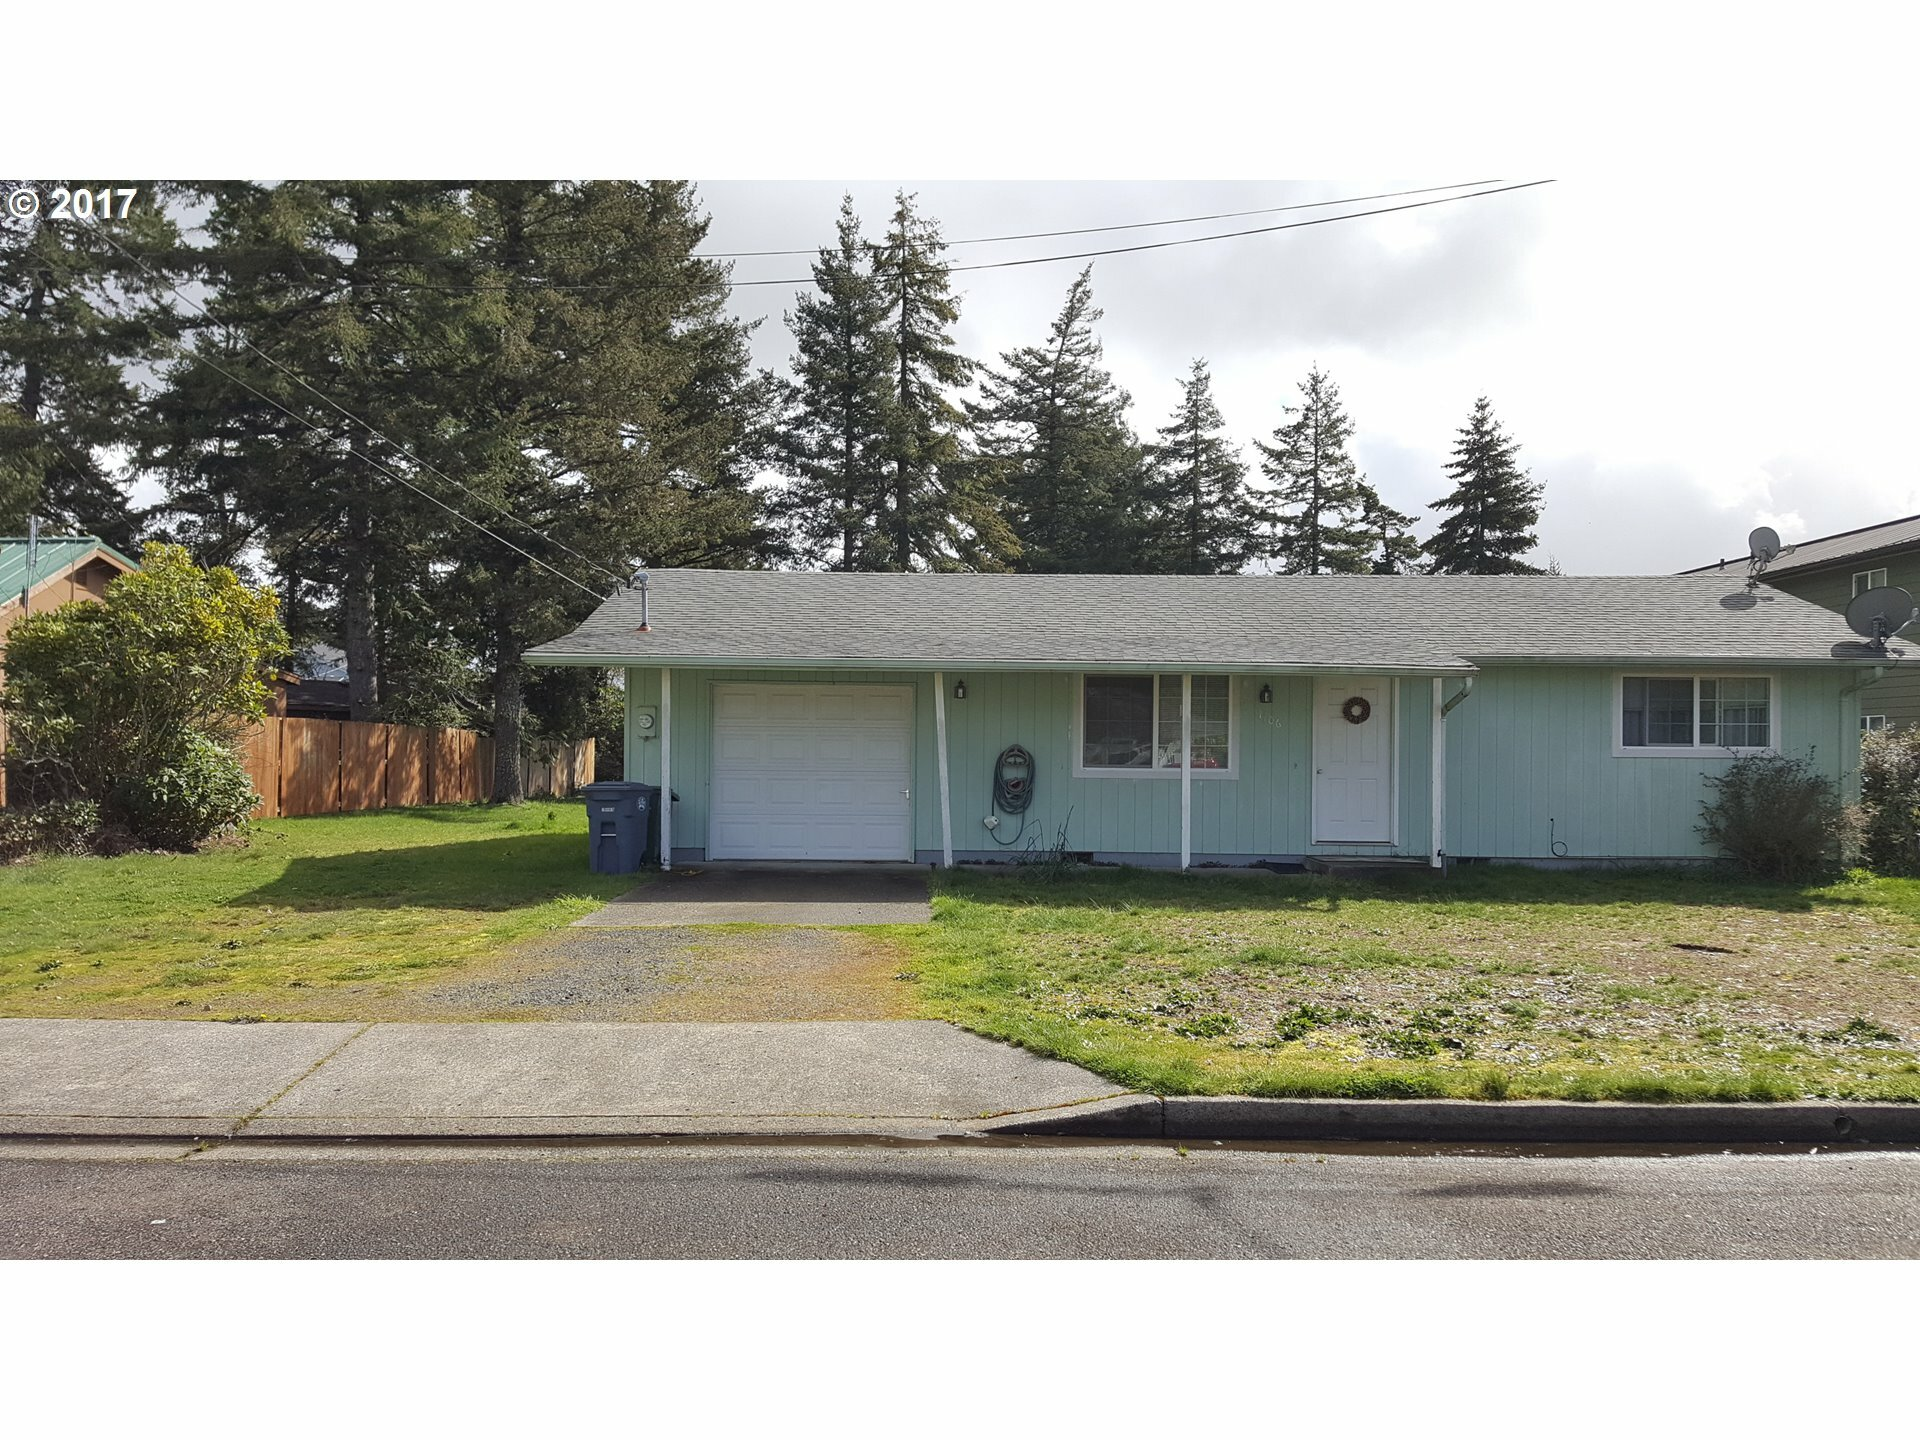 1106 Maple St, Florence, OR - USA (photo 1)